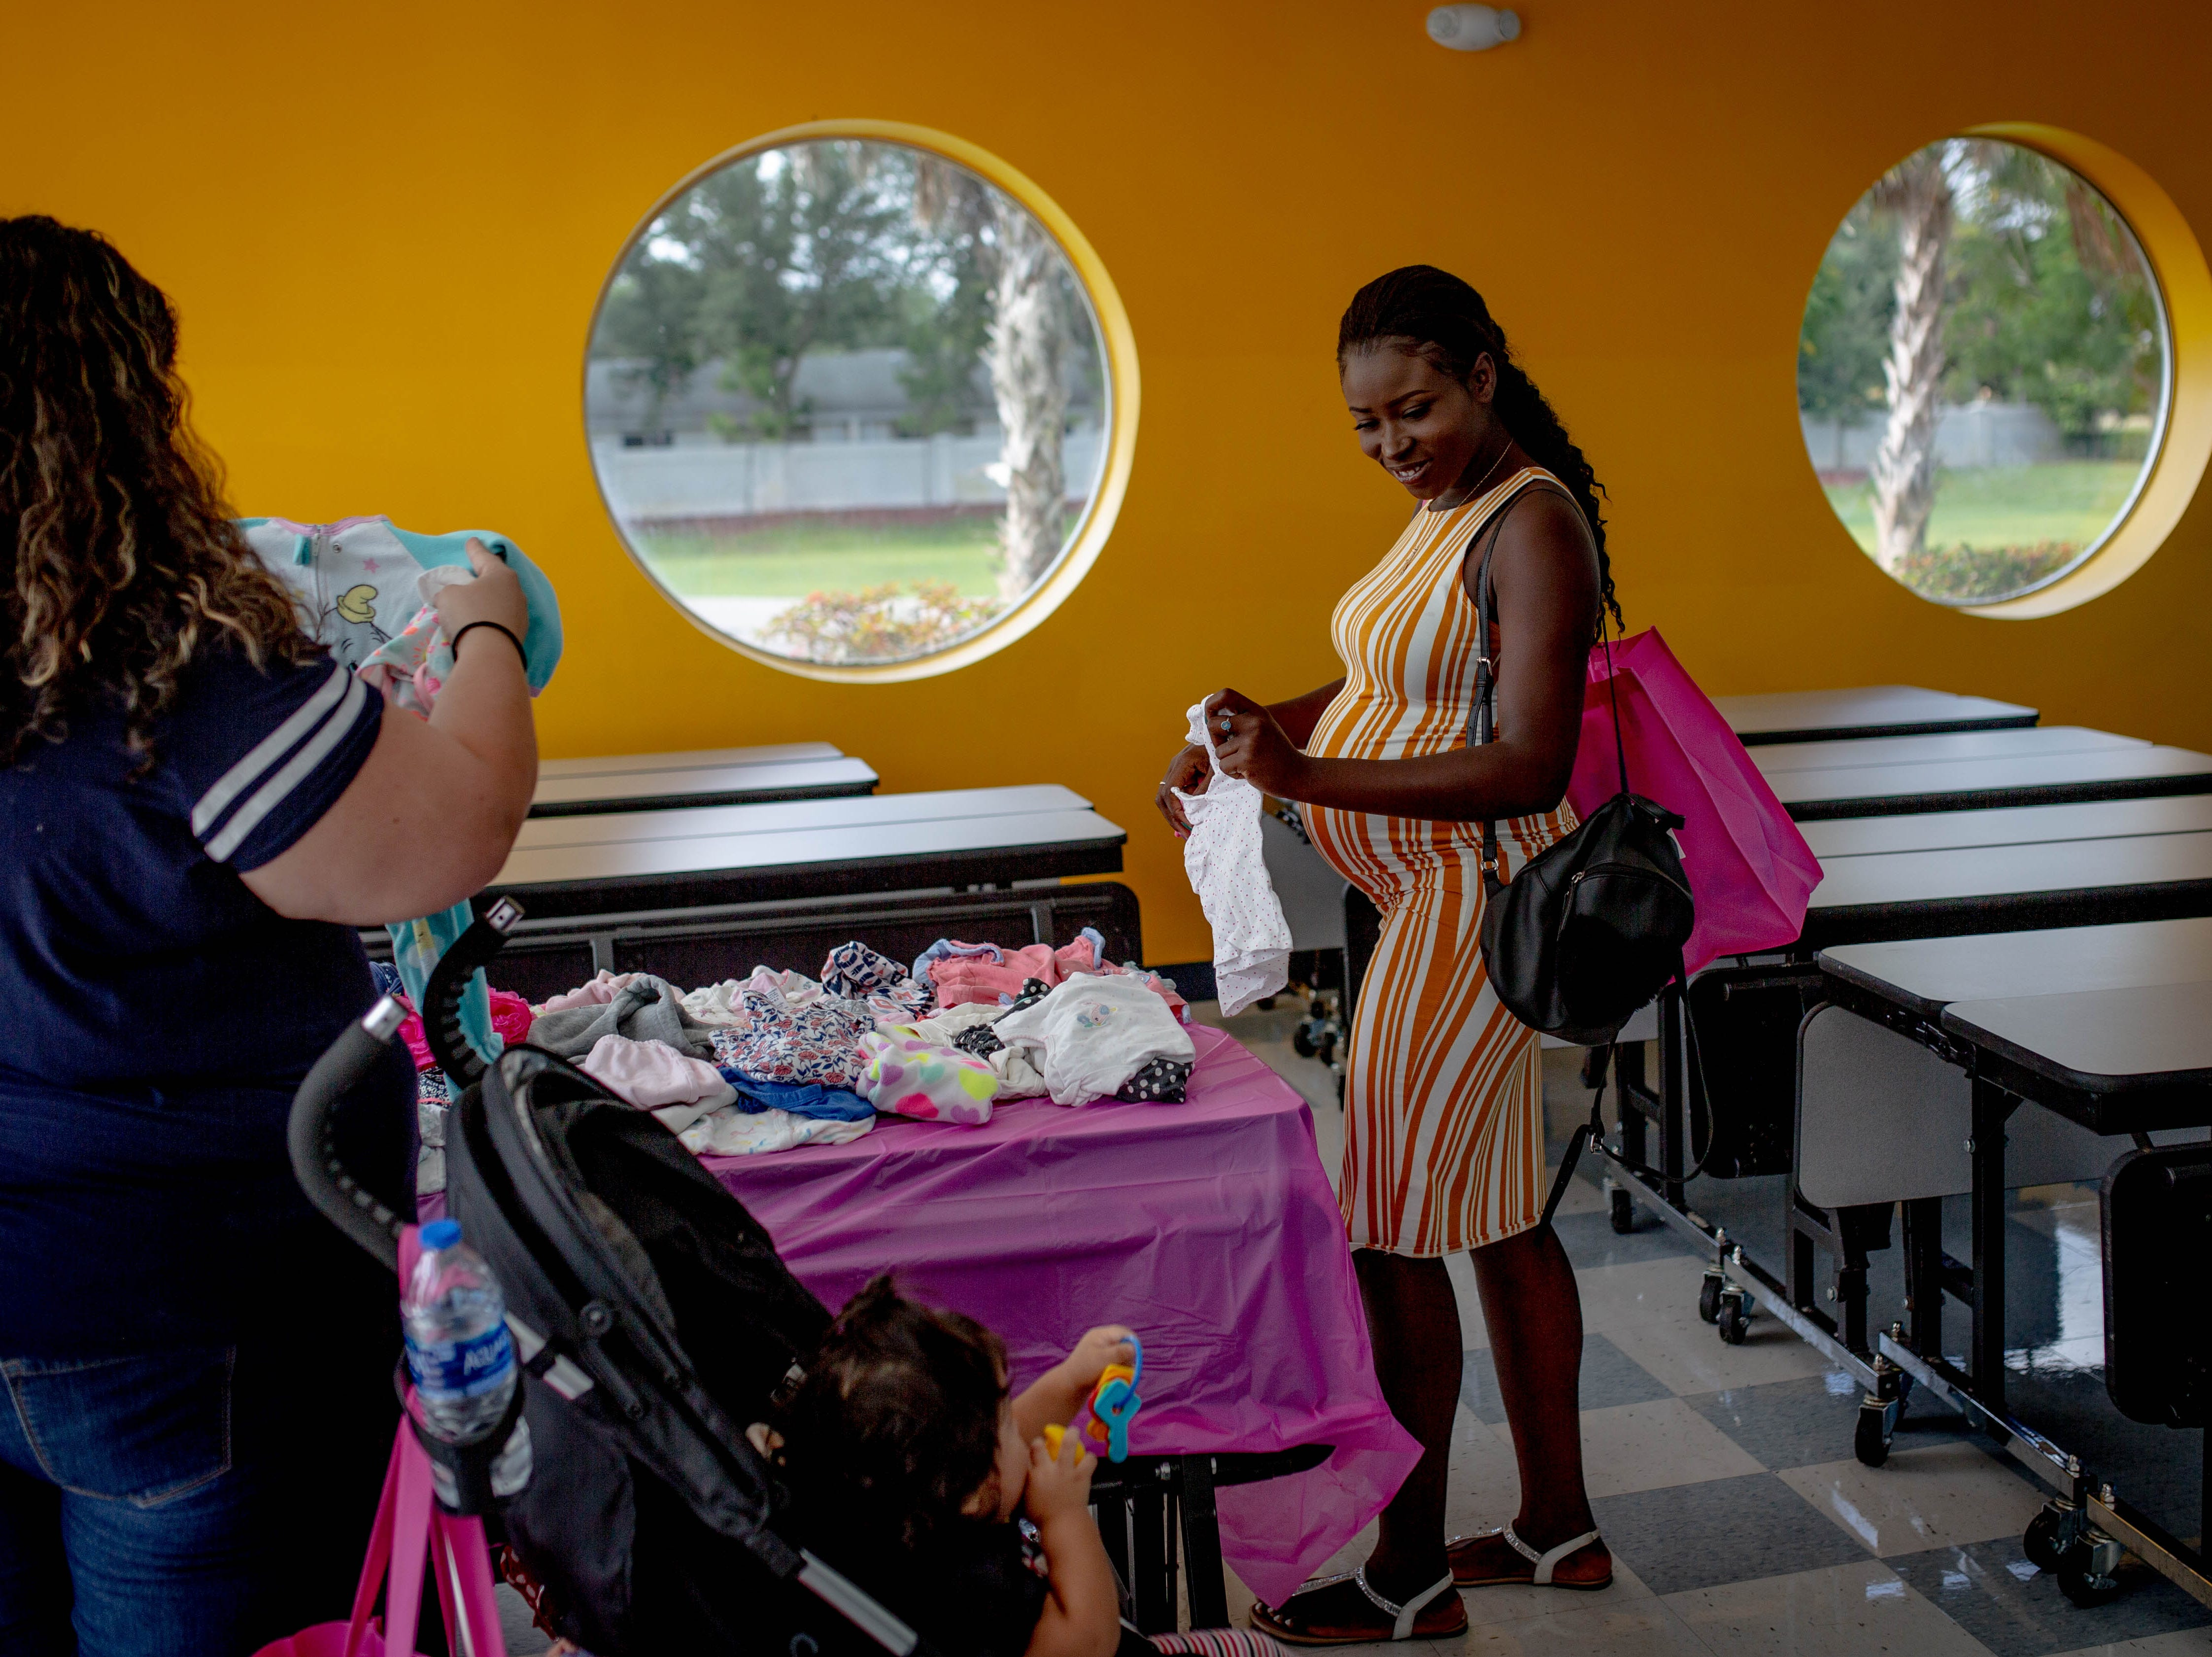 Marie O. Jean browses donated baby clothing at the Immokalee Community Baby Shower at the Boys & Girls Club in Immokalee on Thursday, May 9, 2019. Theodore, an employee of the Boys & Girls Club, is due in July.